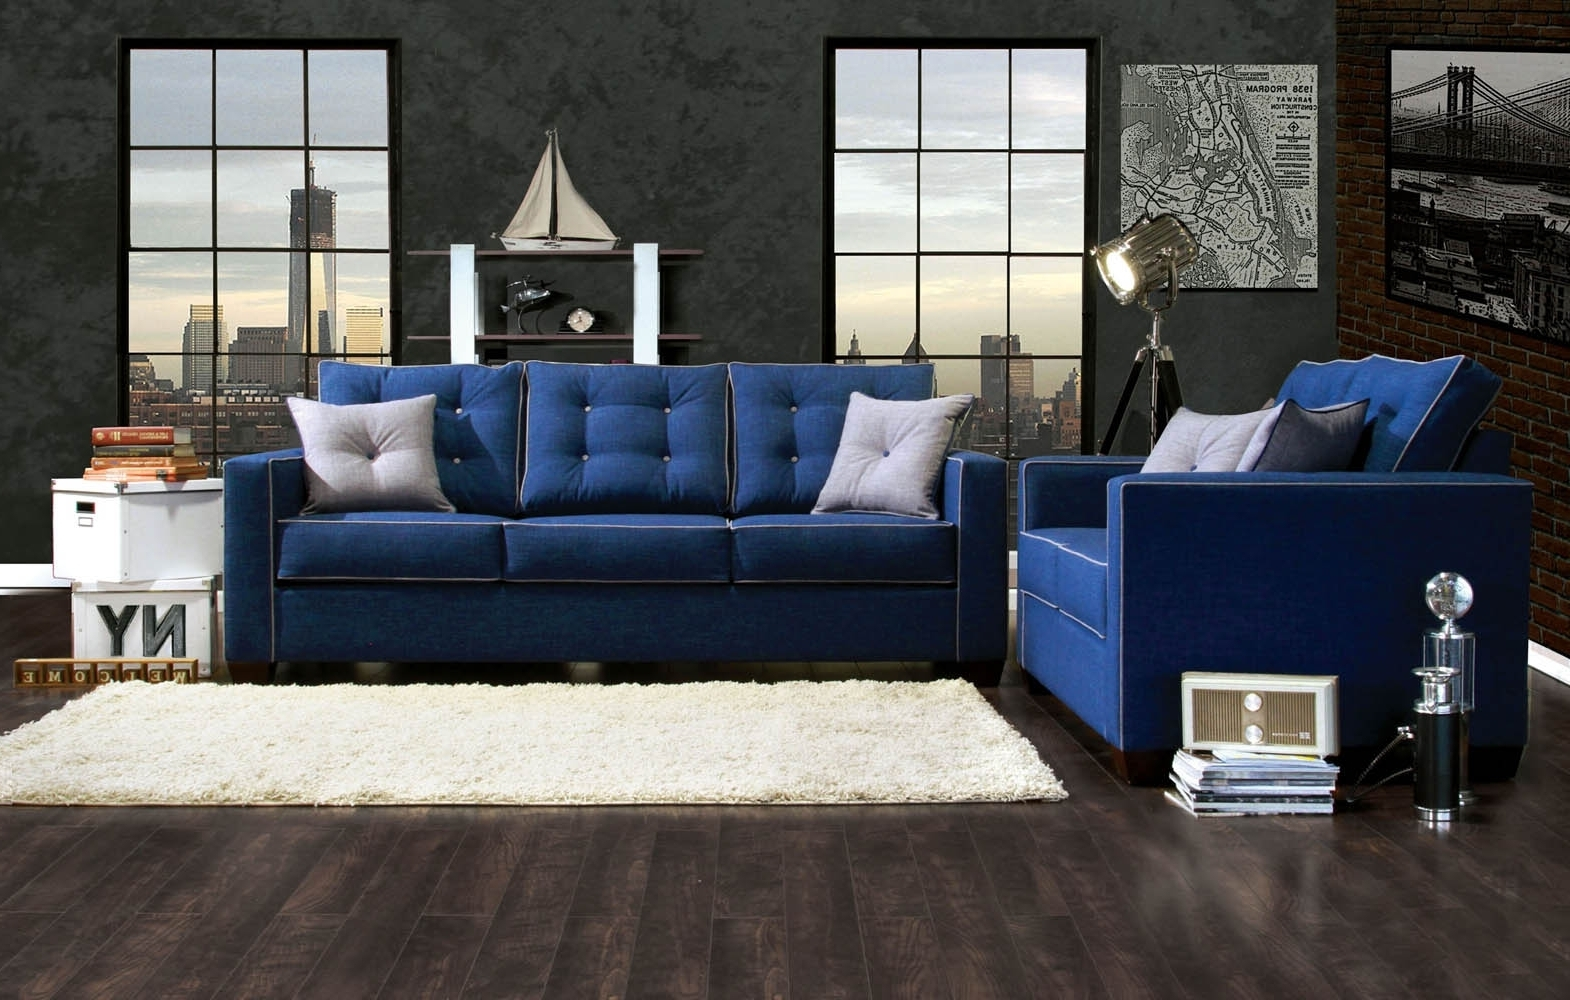 Most Recently Released Blue Sofa Living Room Ideas With Wall Brick Decor And Dark Wooden With Regard To Dark Blue Sofas (View 9 of 15)